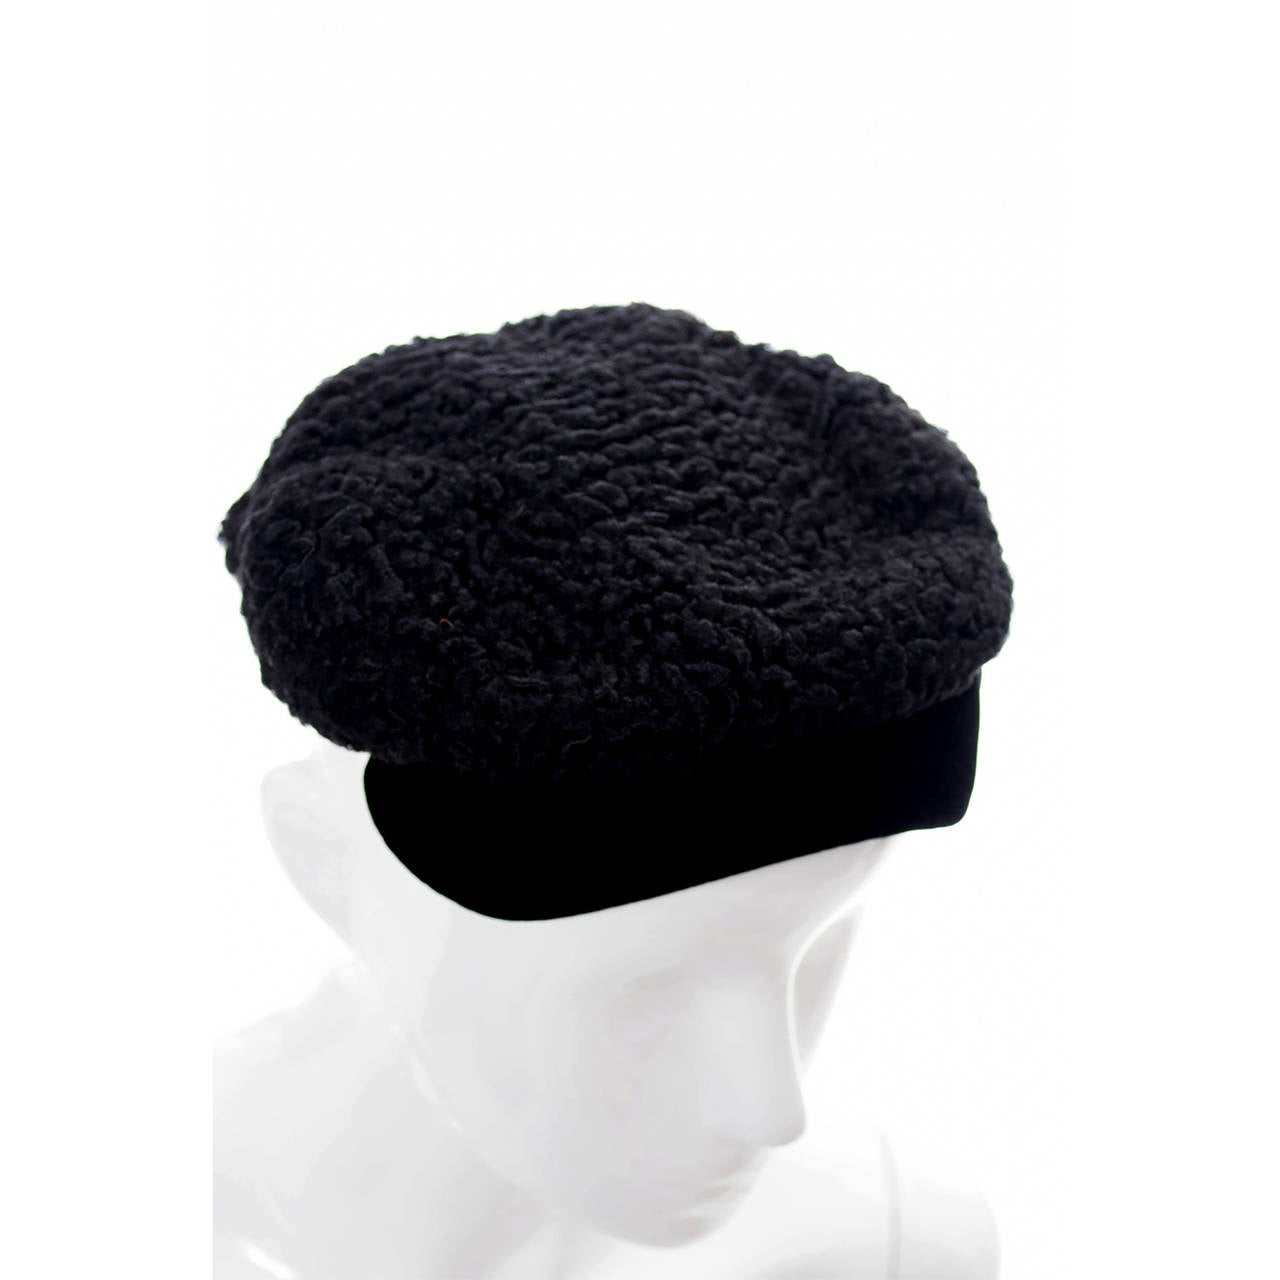 Black Hattie Carnegie Vintage Hat From I Magnin Curly Lambswool & Velvet Newsboy Cap  For Sale